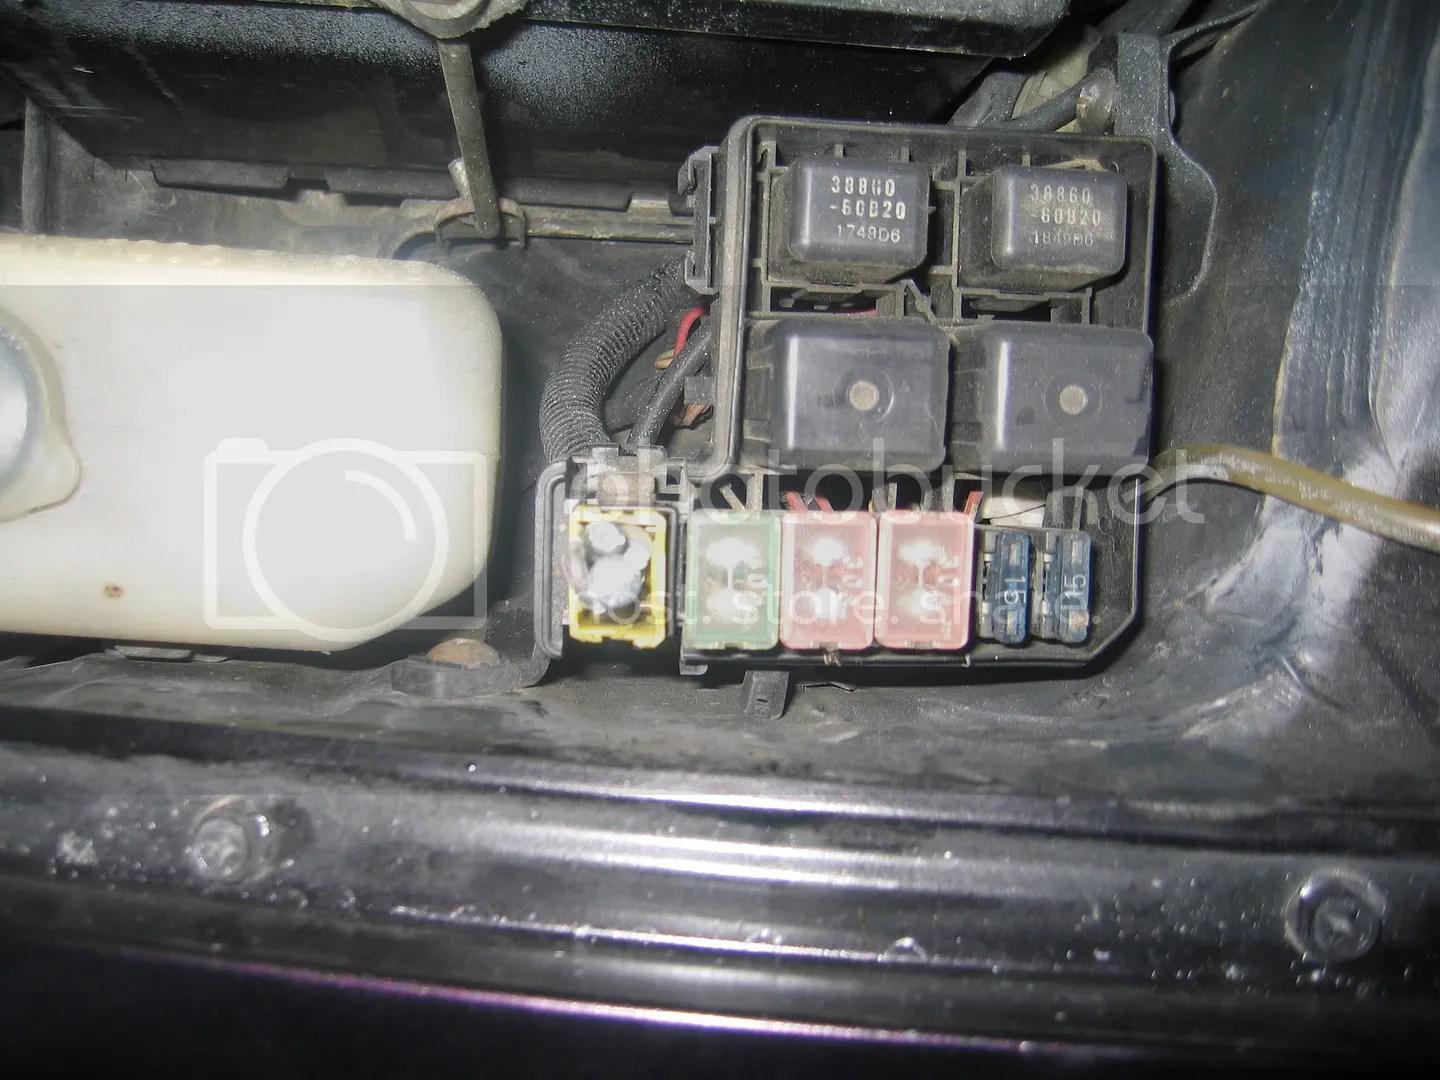 Geo Metro Fuse Box Cover 1989 Suzuki Swift Gti Gameplanet Forums Project Cars